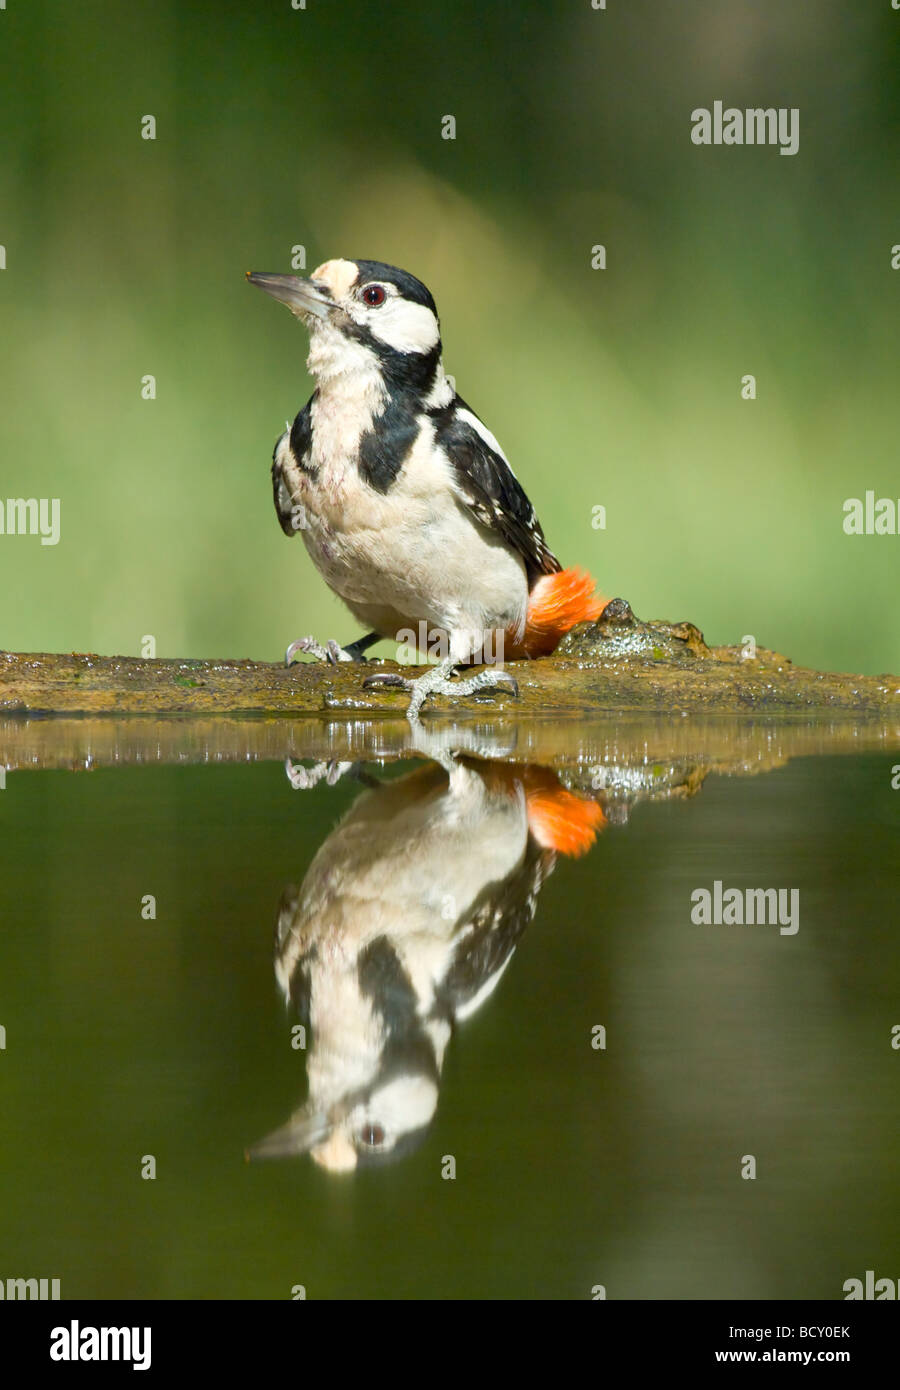 Great Spotted Woodpecker Dendrocopos major Hungary - Stock Image